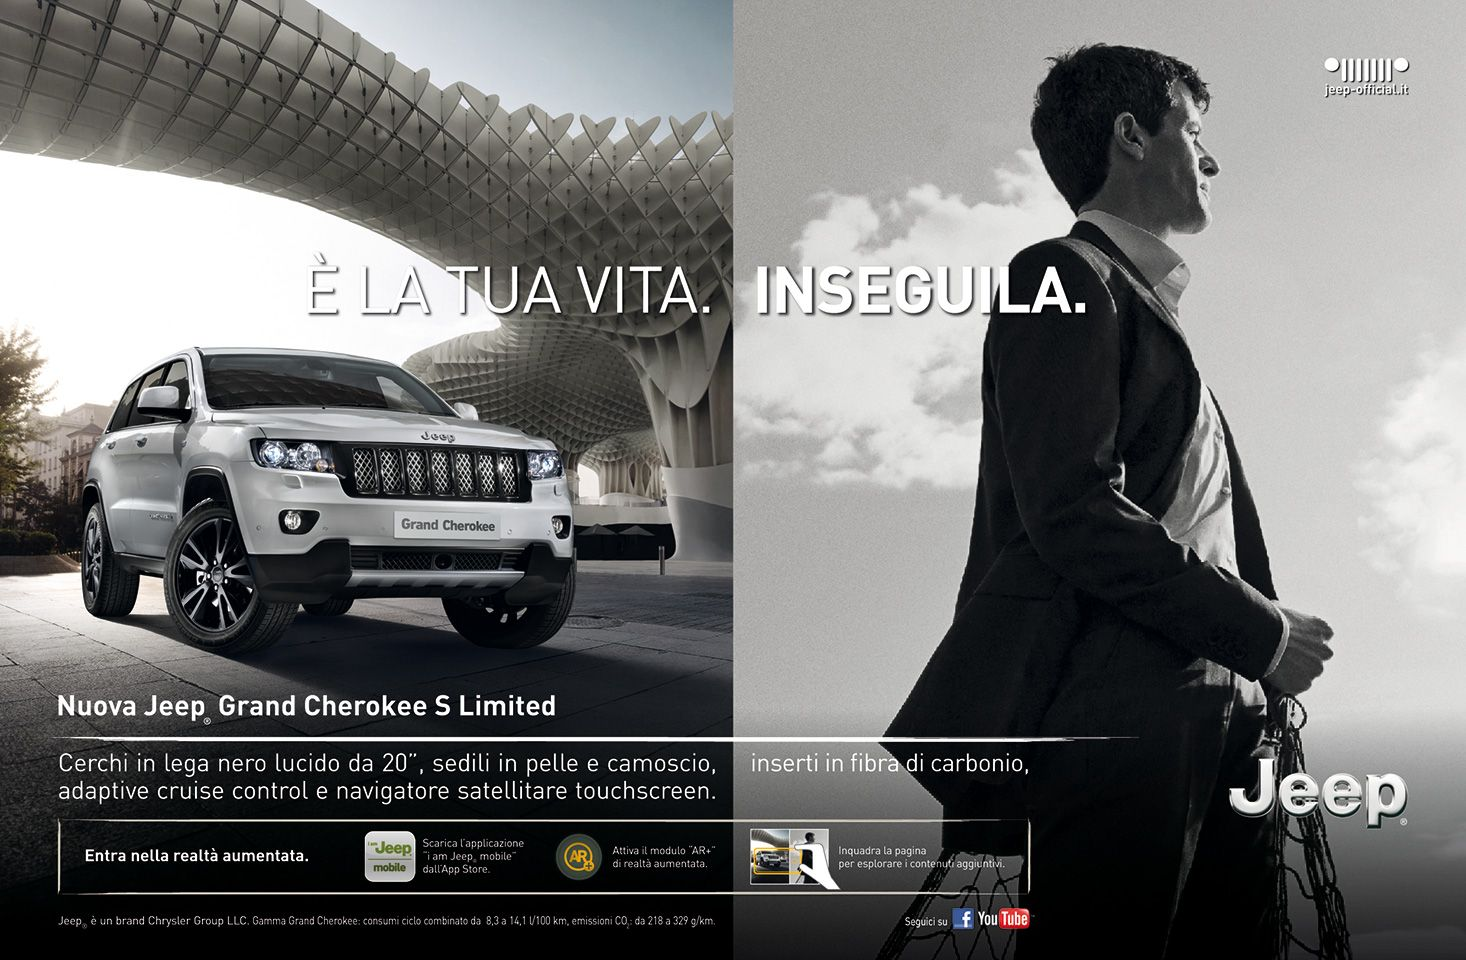 Grand cherokee s limited italian advertising i am jeep mobile app ar